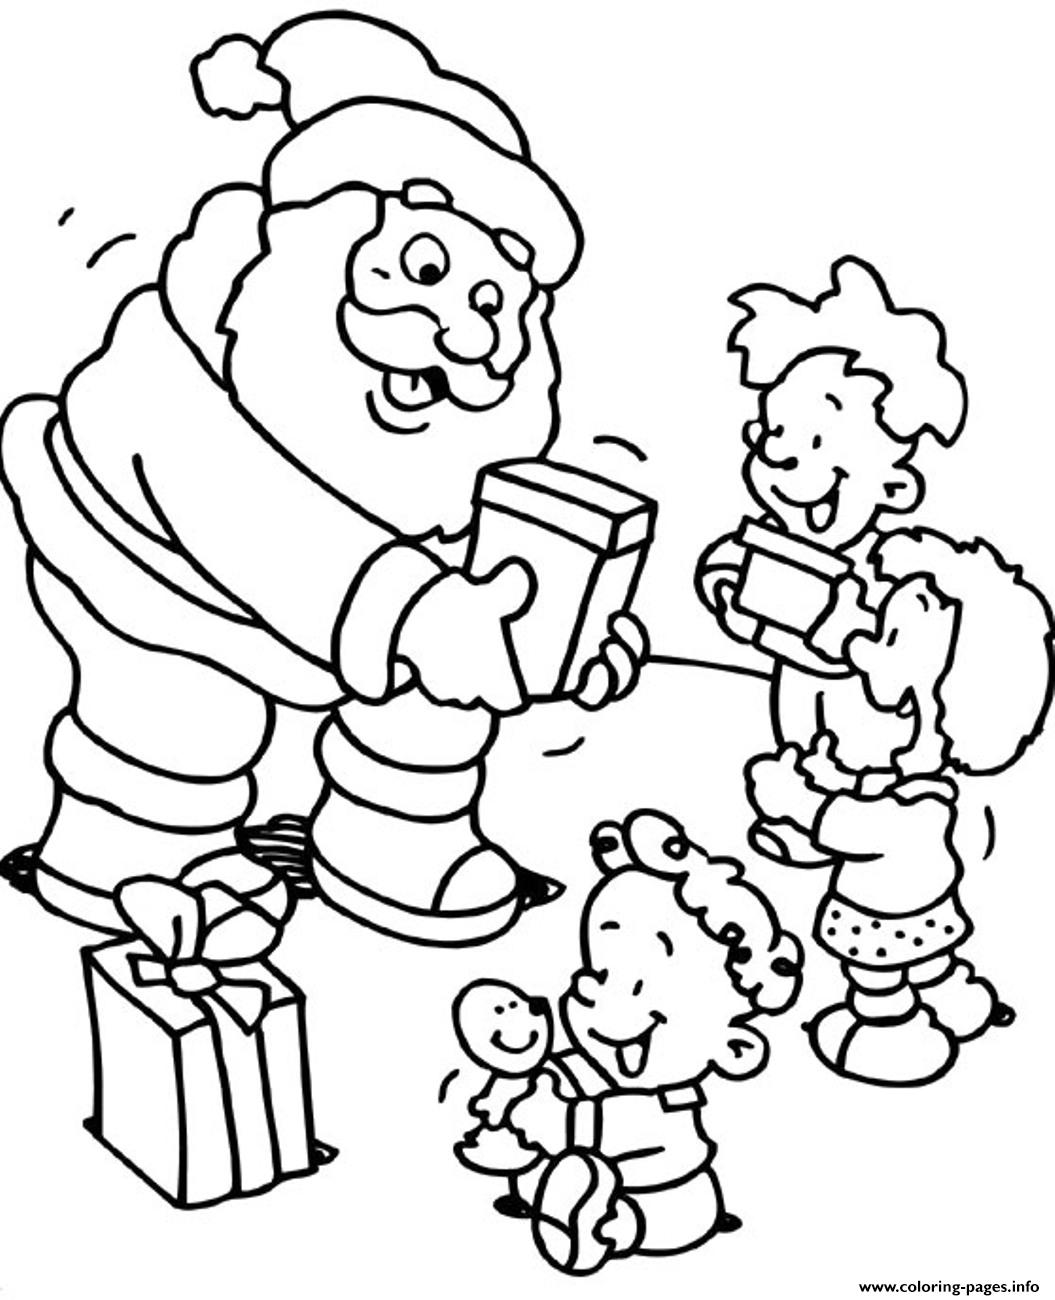 santa coloring pages for kids - christmas s for kids santa giving some gifts to kids74f2